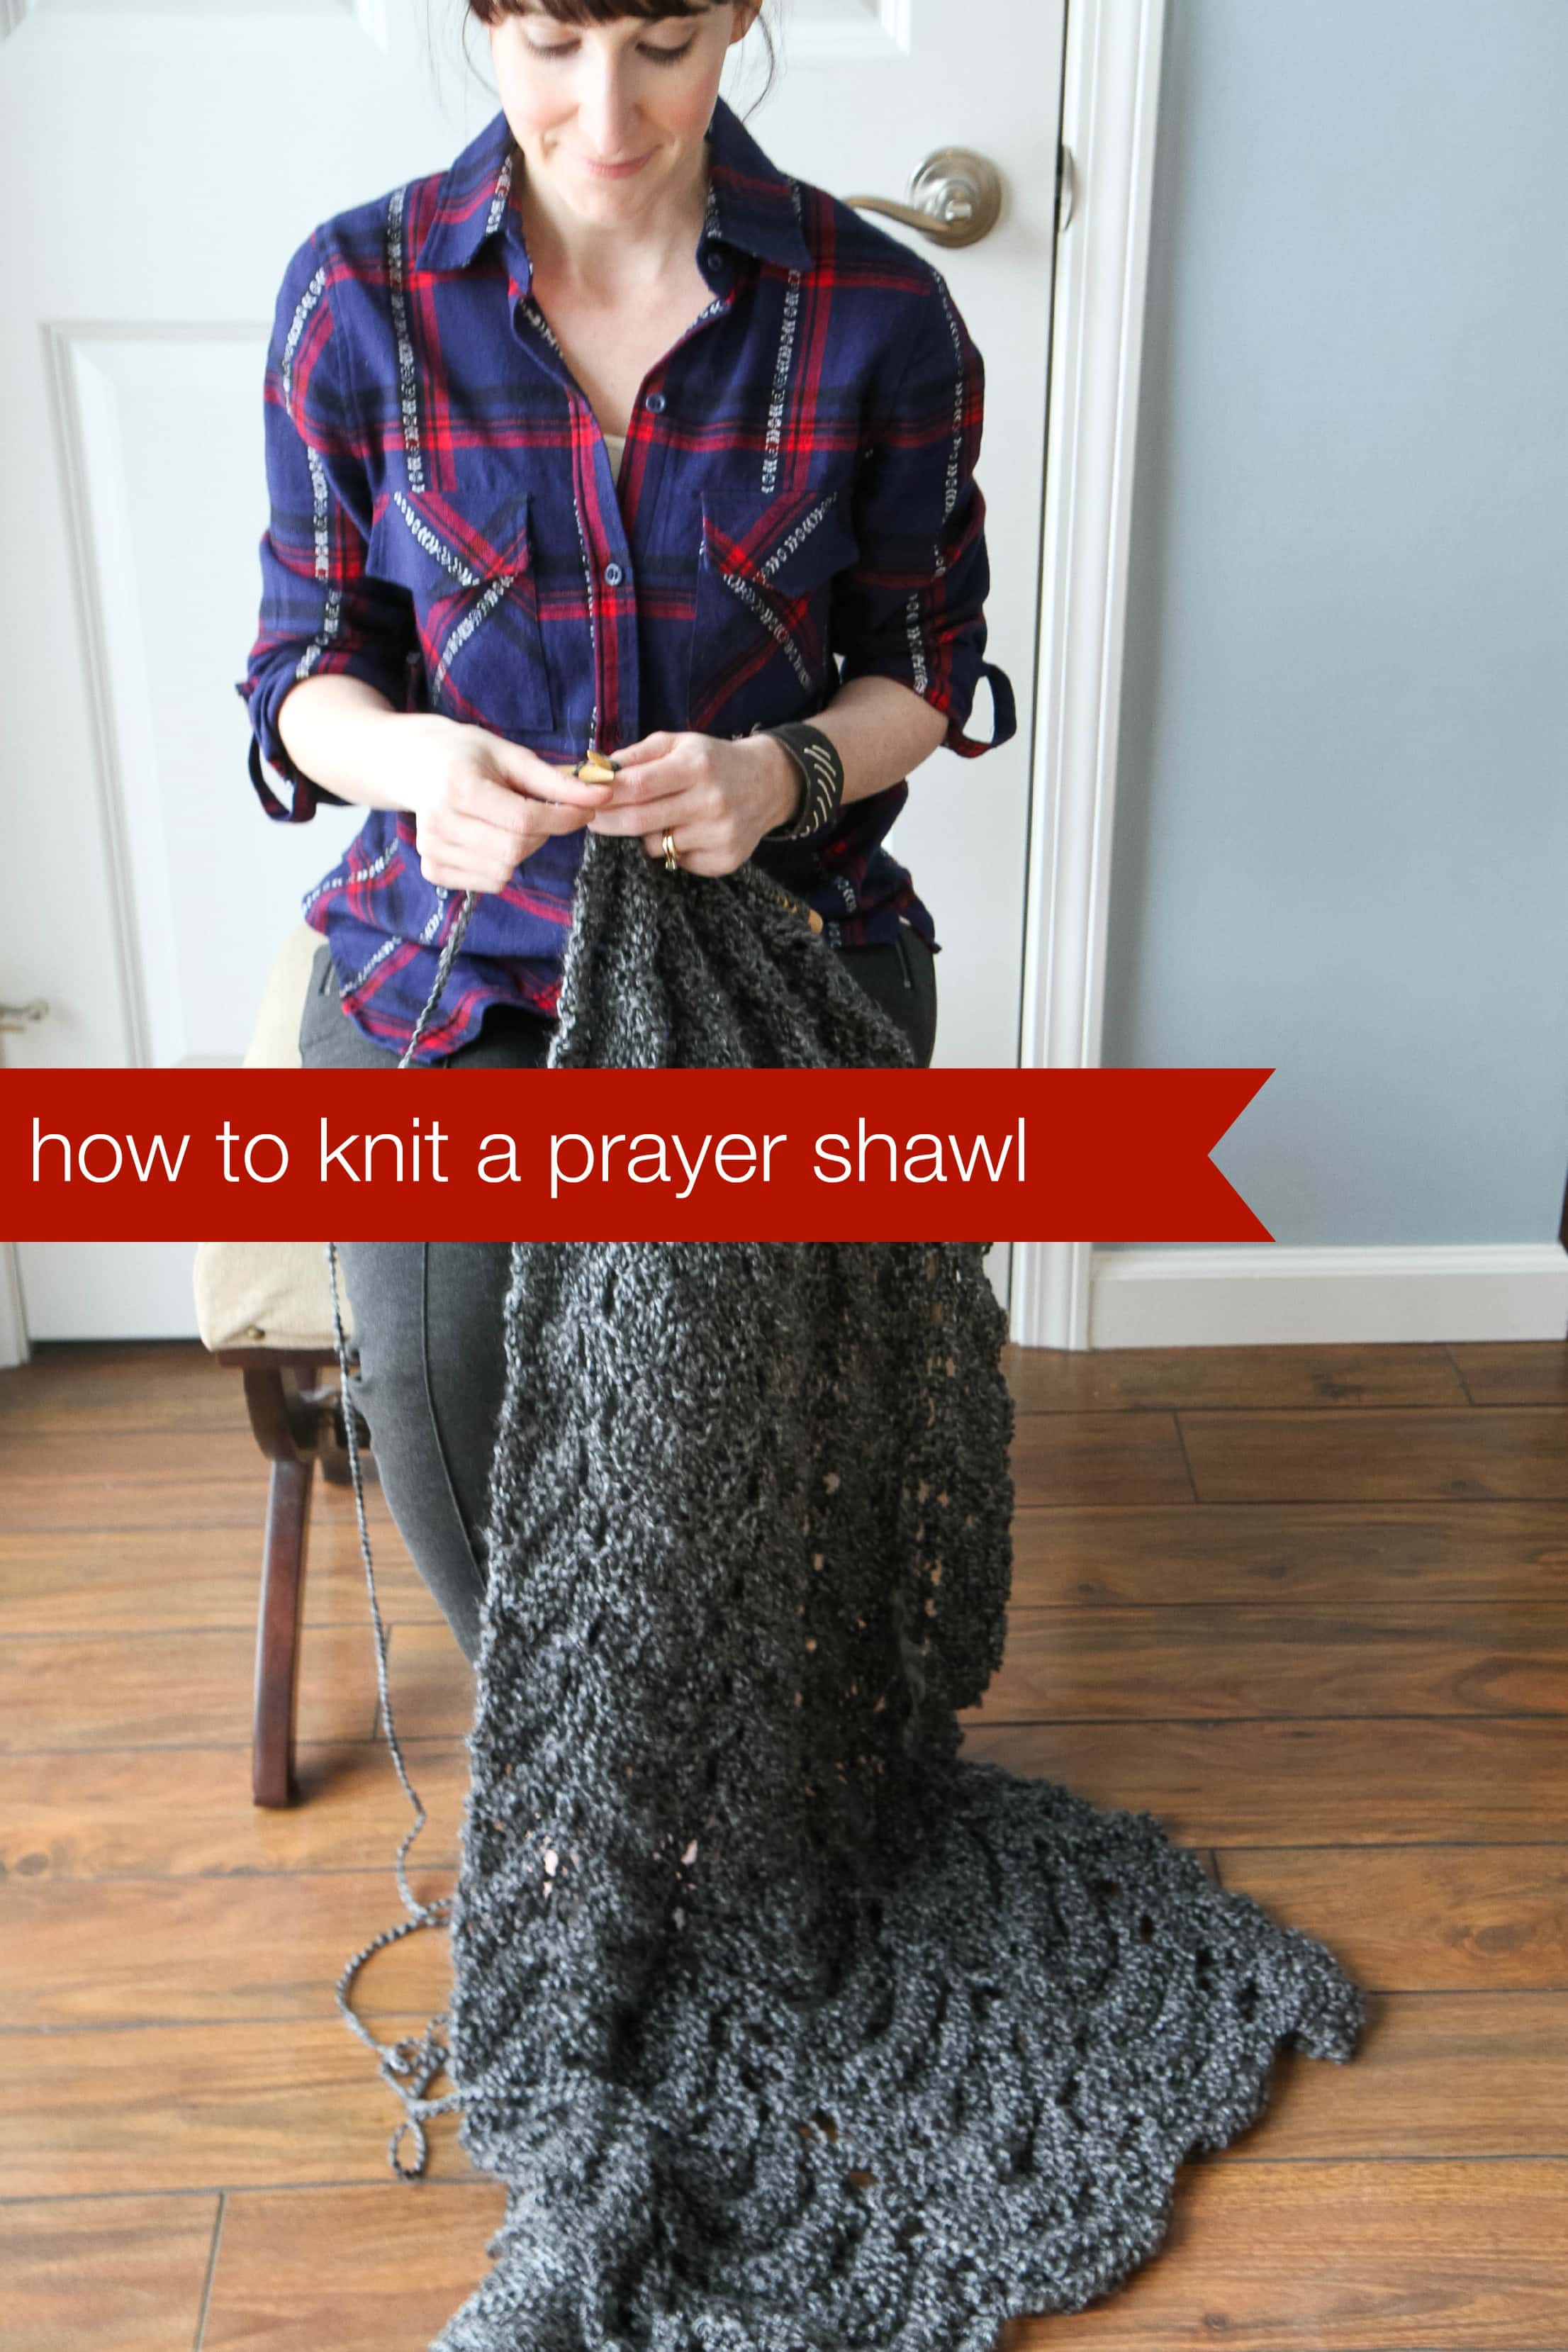 how-to-knit-prayer-shawls-header